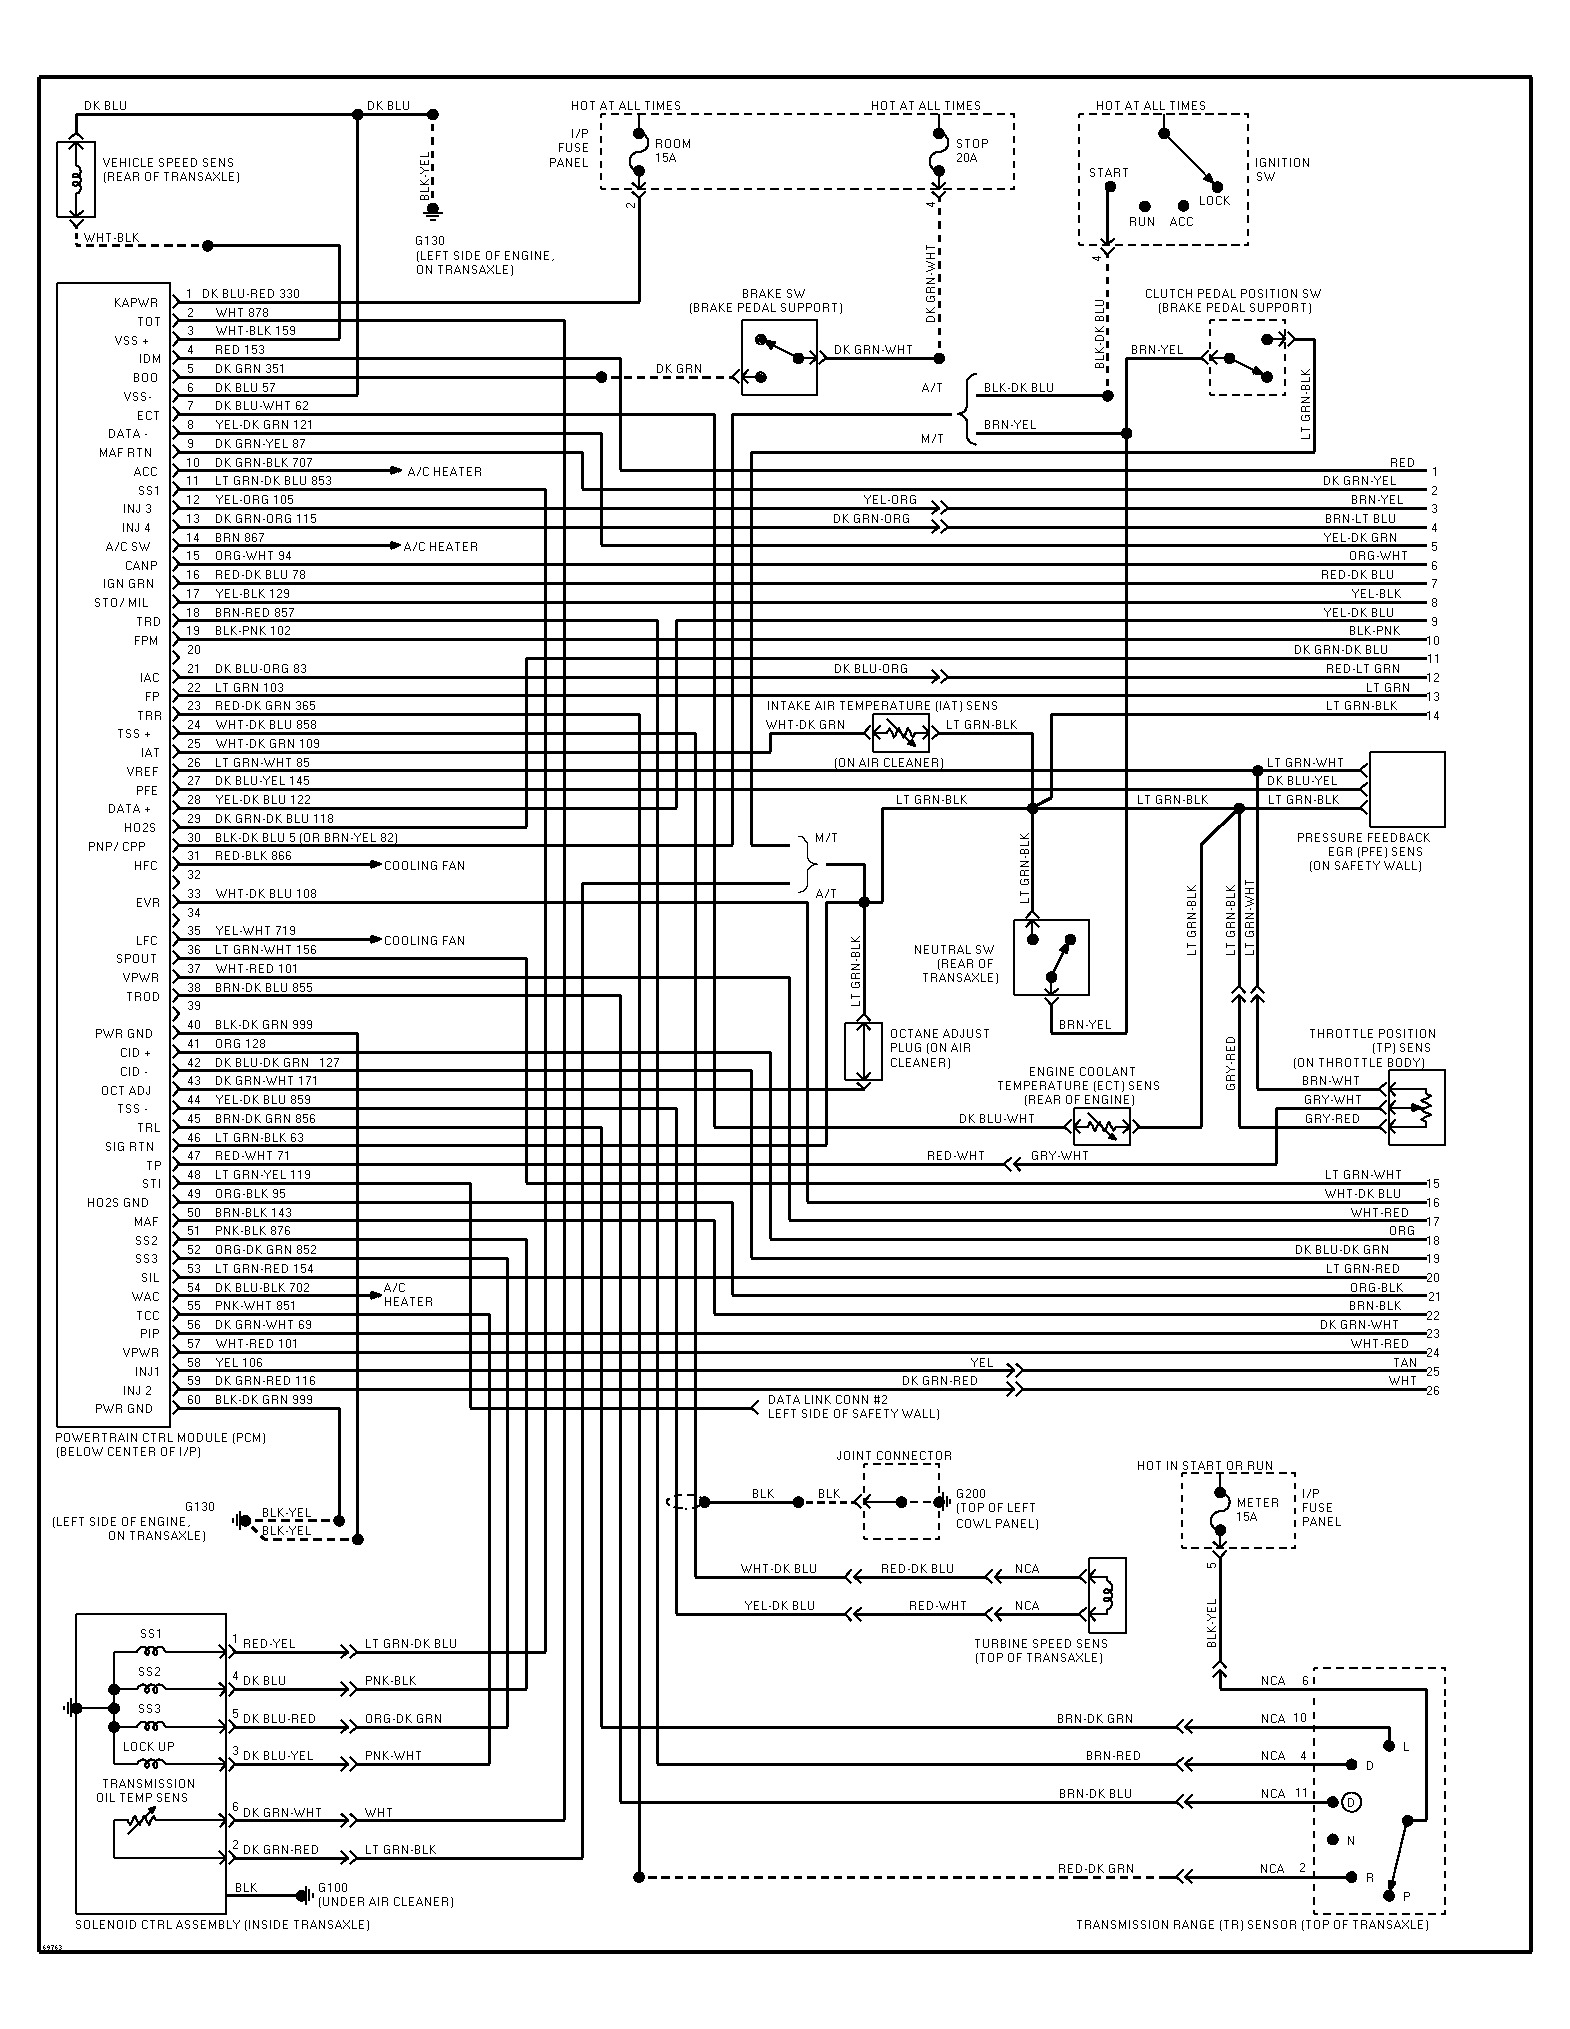 original 1995 ford escort wiring diagram i need to find a color coded 1998 ford escort wiring diagram at readyjetset.co